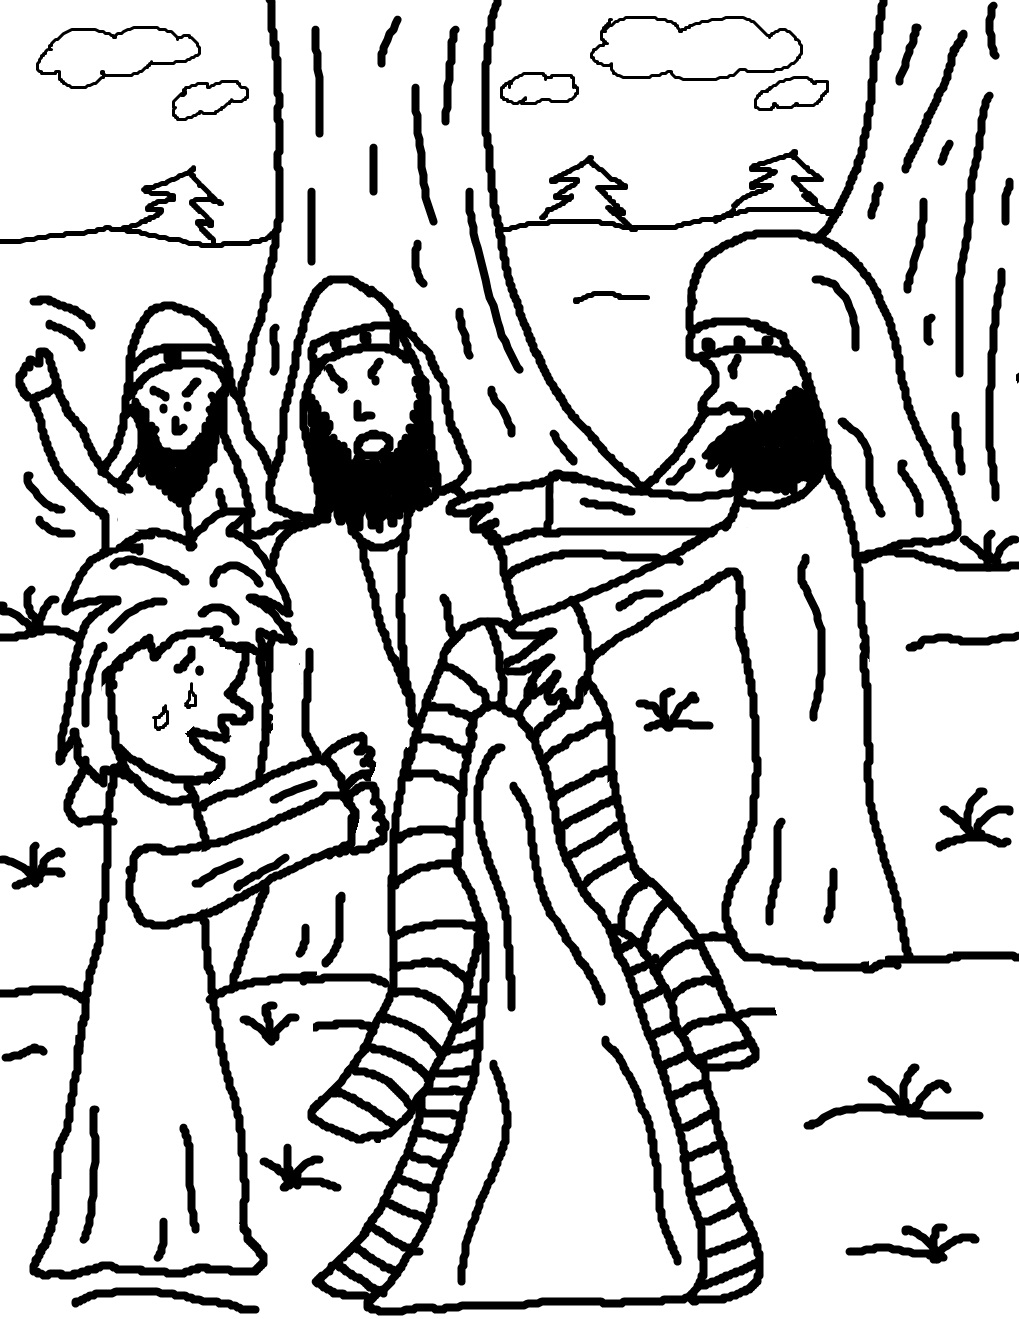 Josephs Coat of Many Colors Coloring Pages